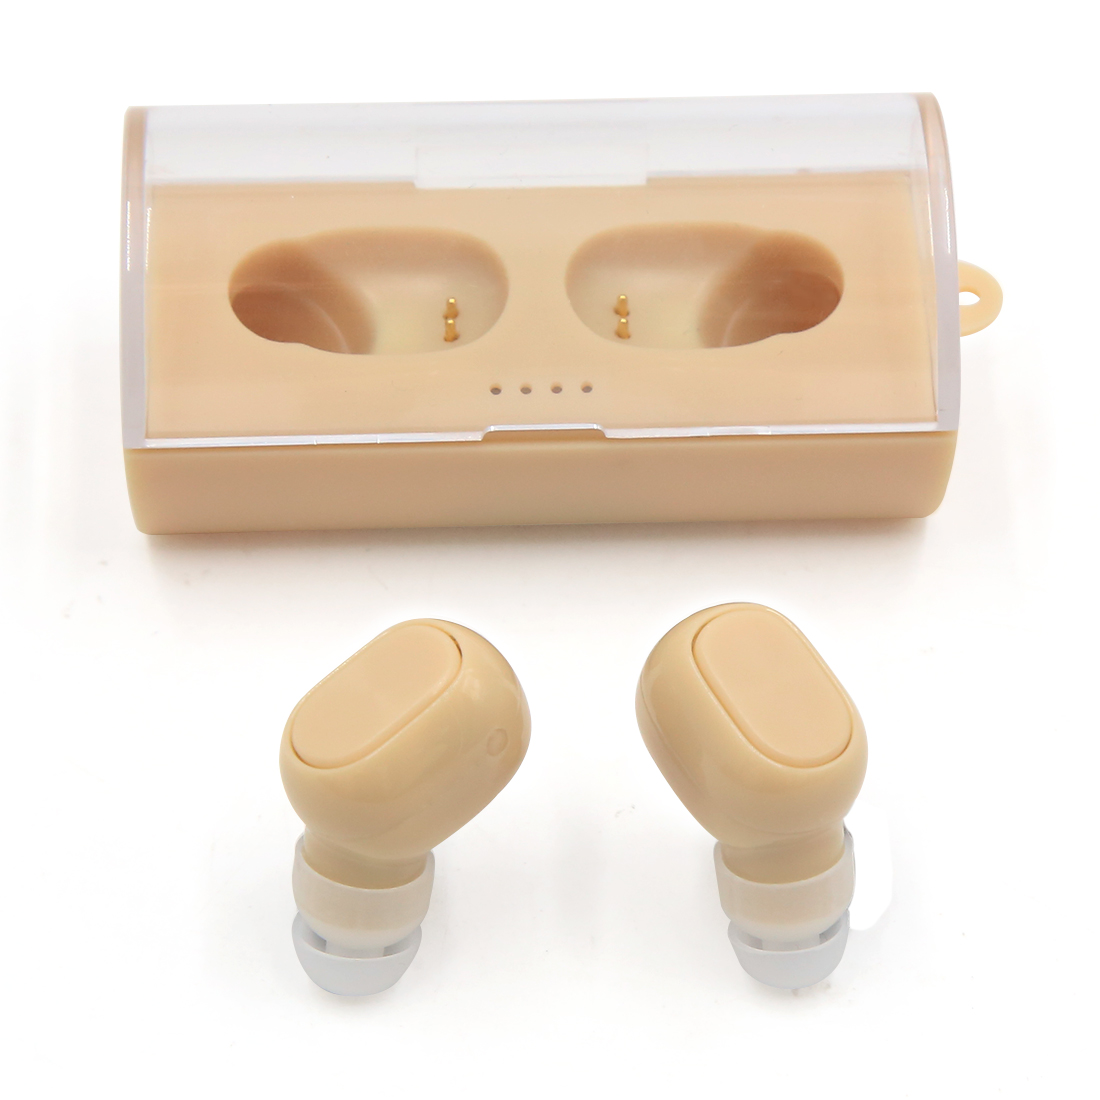 2017 NEWEST Mini Wireless Earbuds Bluetooth V4.1 Stereo Music Headphones with lightweight Charge Case (Light Yellow)